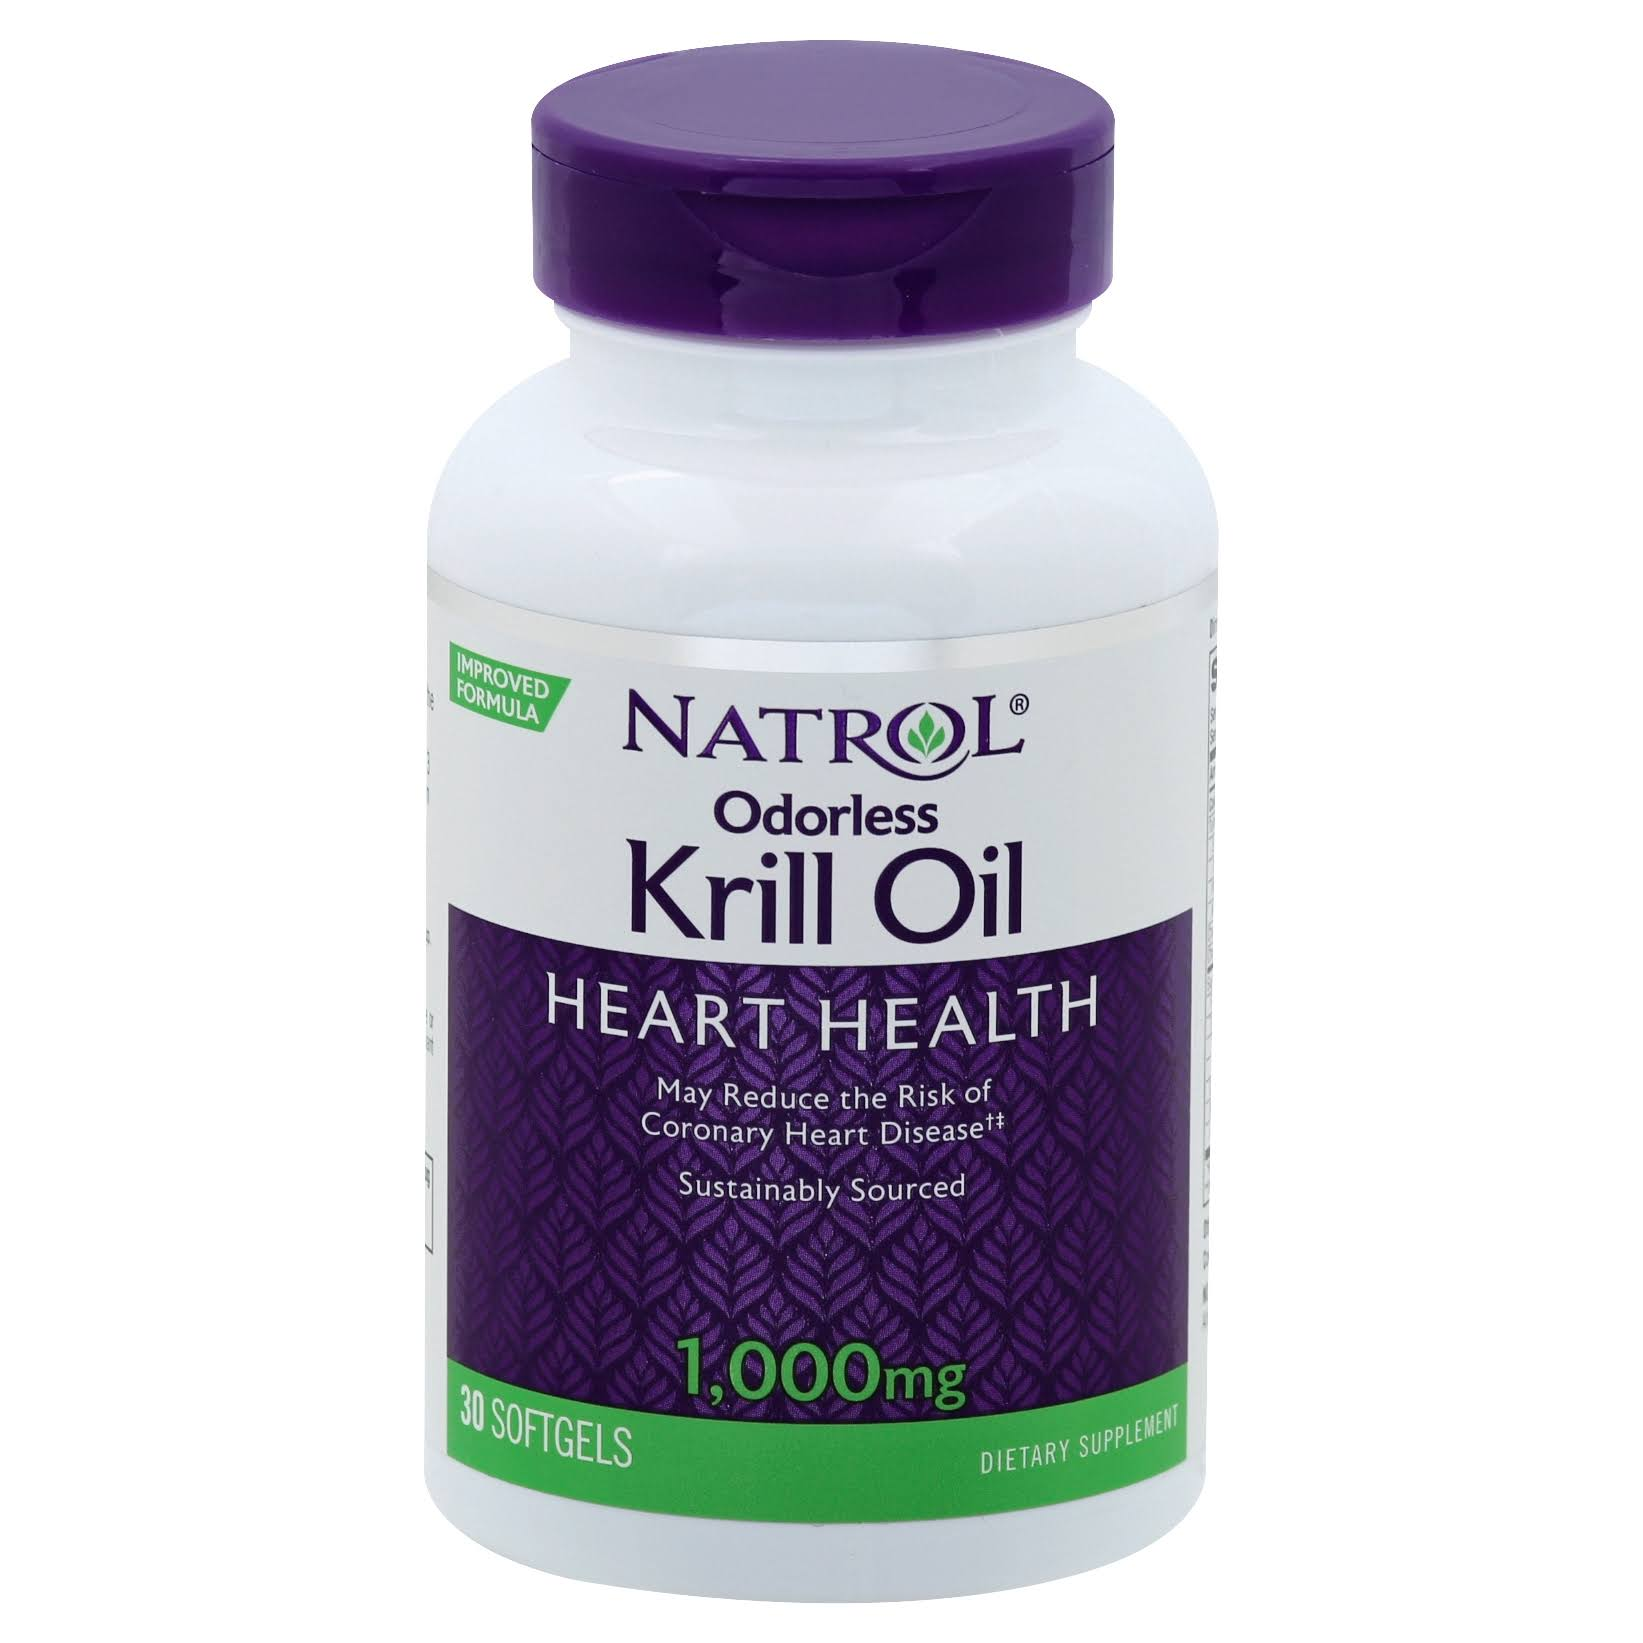 Natrol Omega 3 Krill Oil Dietary Supplement - 30ct